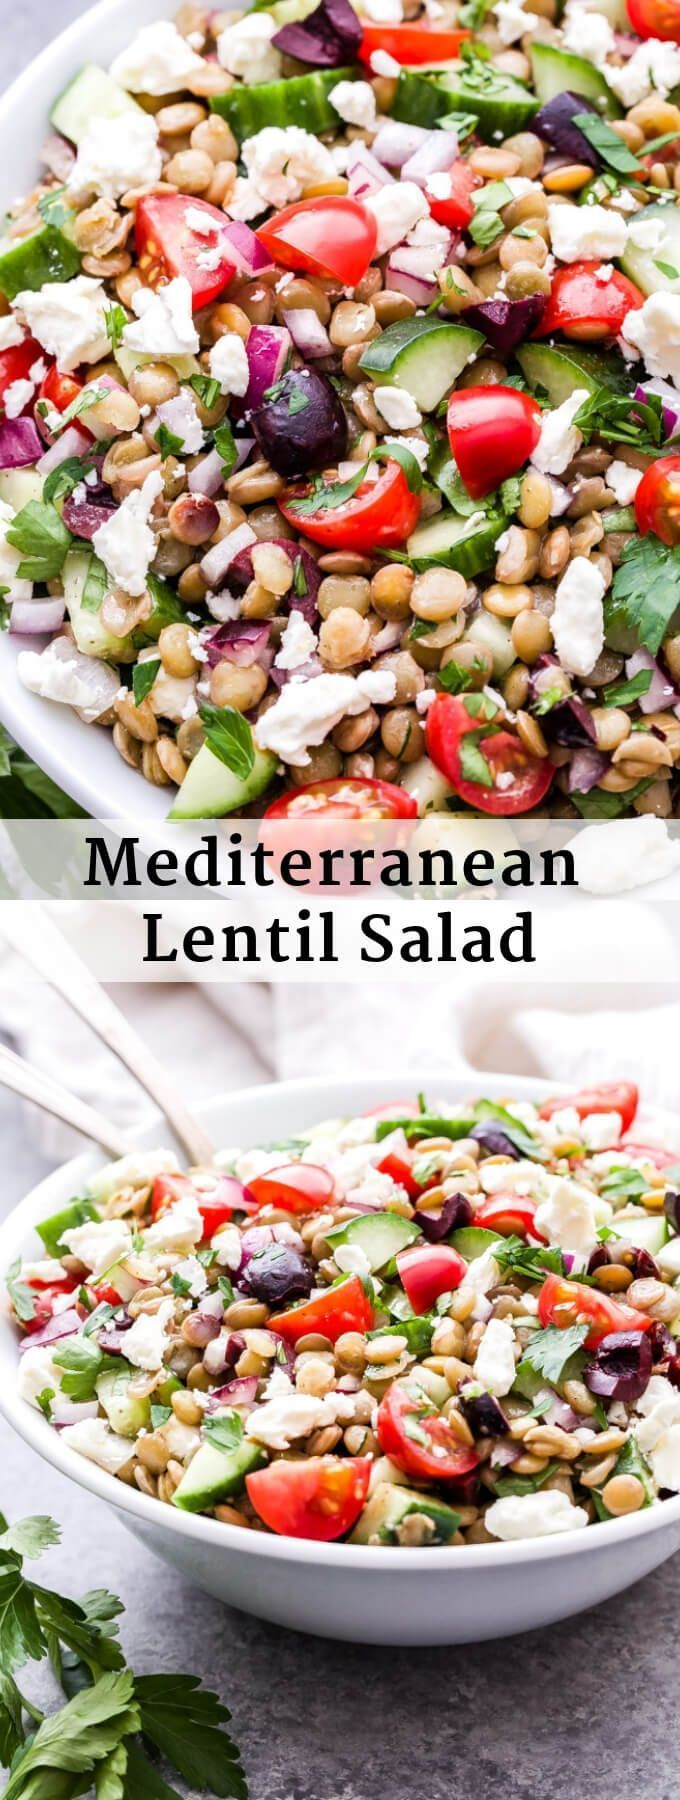 This Mediterranean Lentil Salad is a hearty salad that's perfect for lunch, a si…